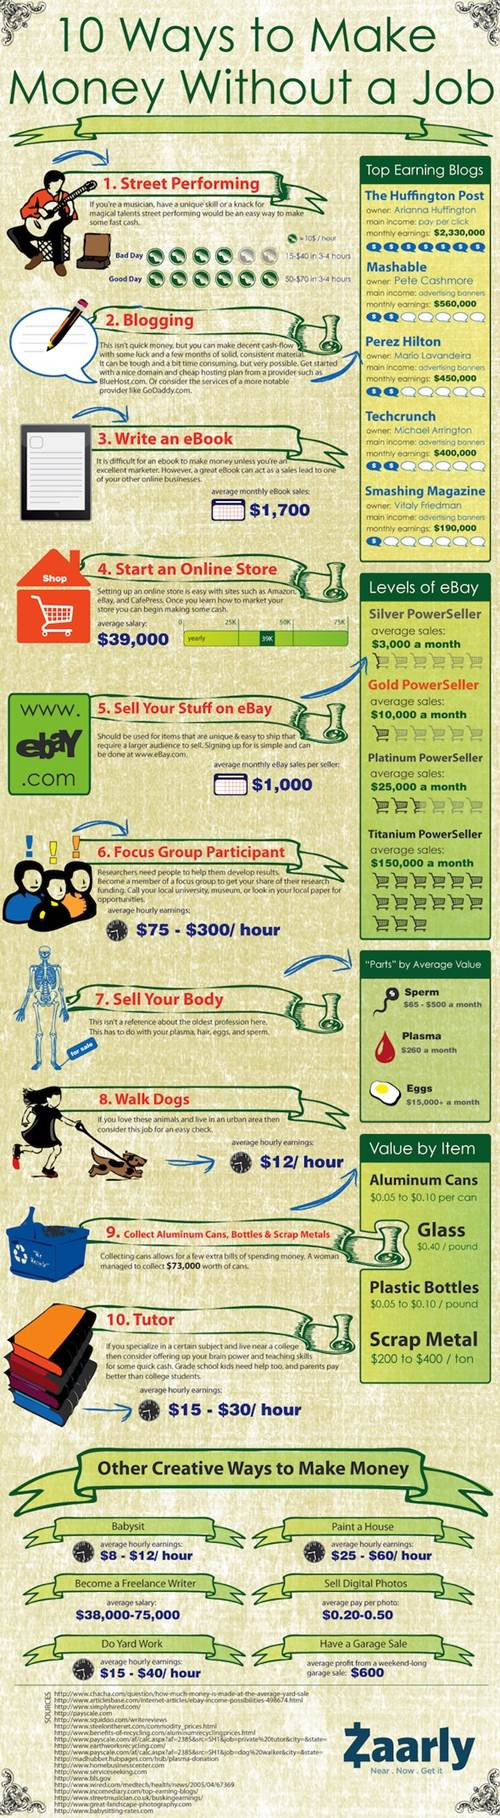 10-Ways-to-Make-Money-Without-a-Job